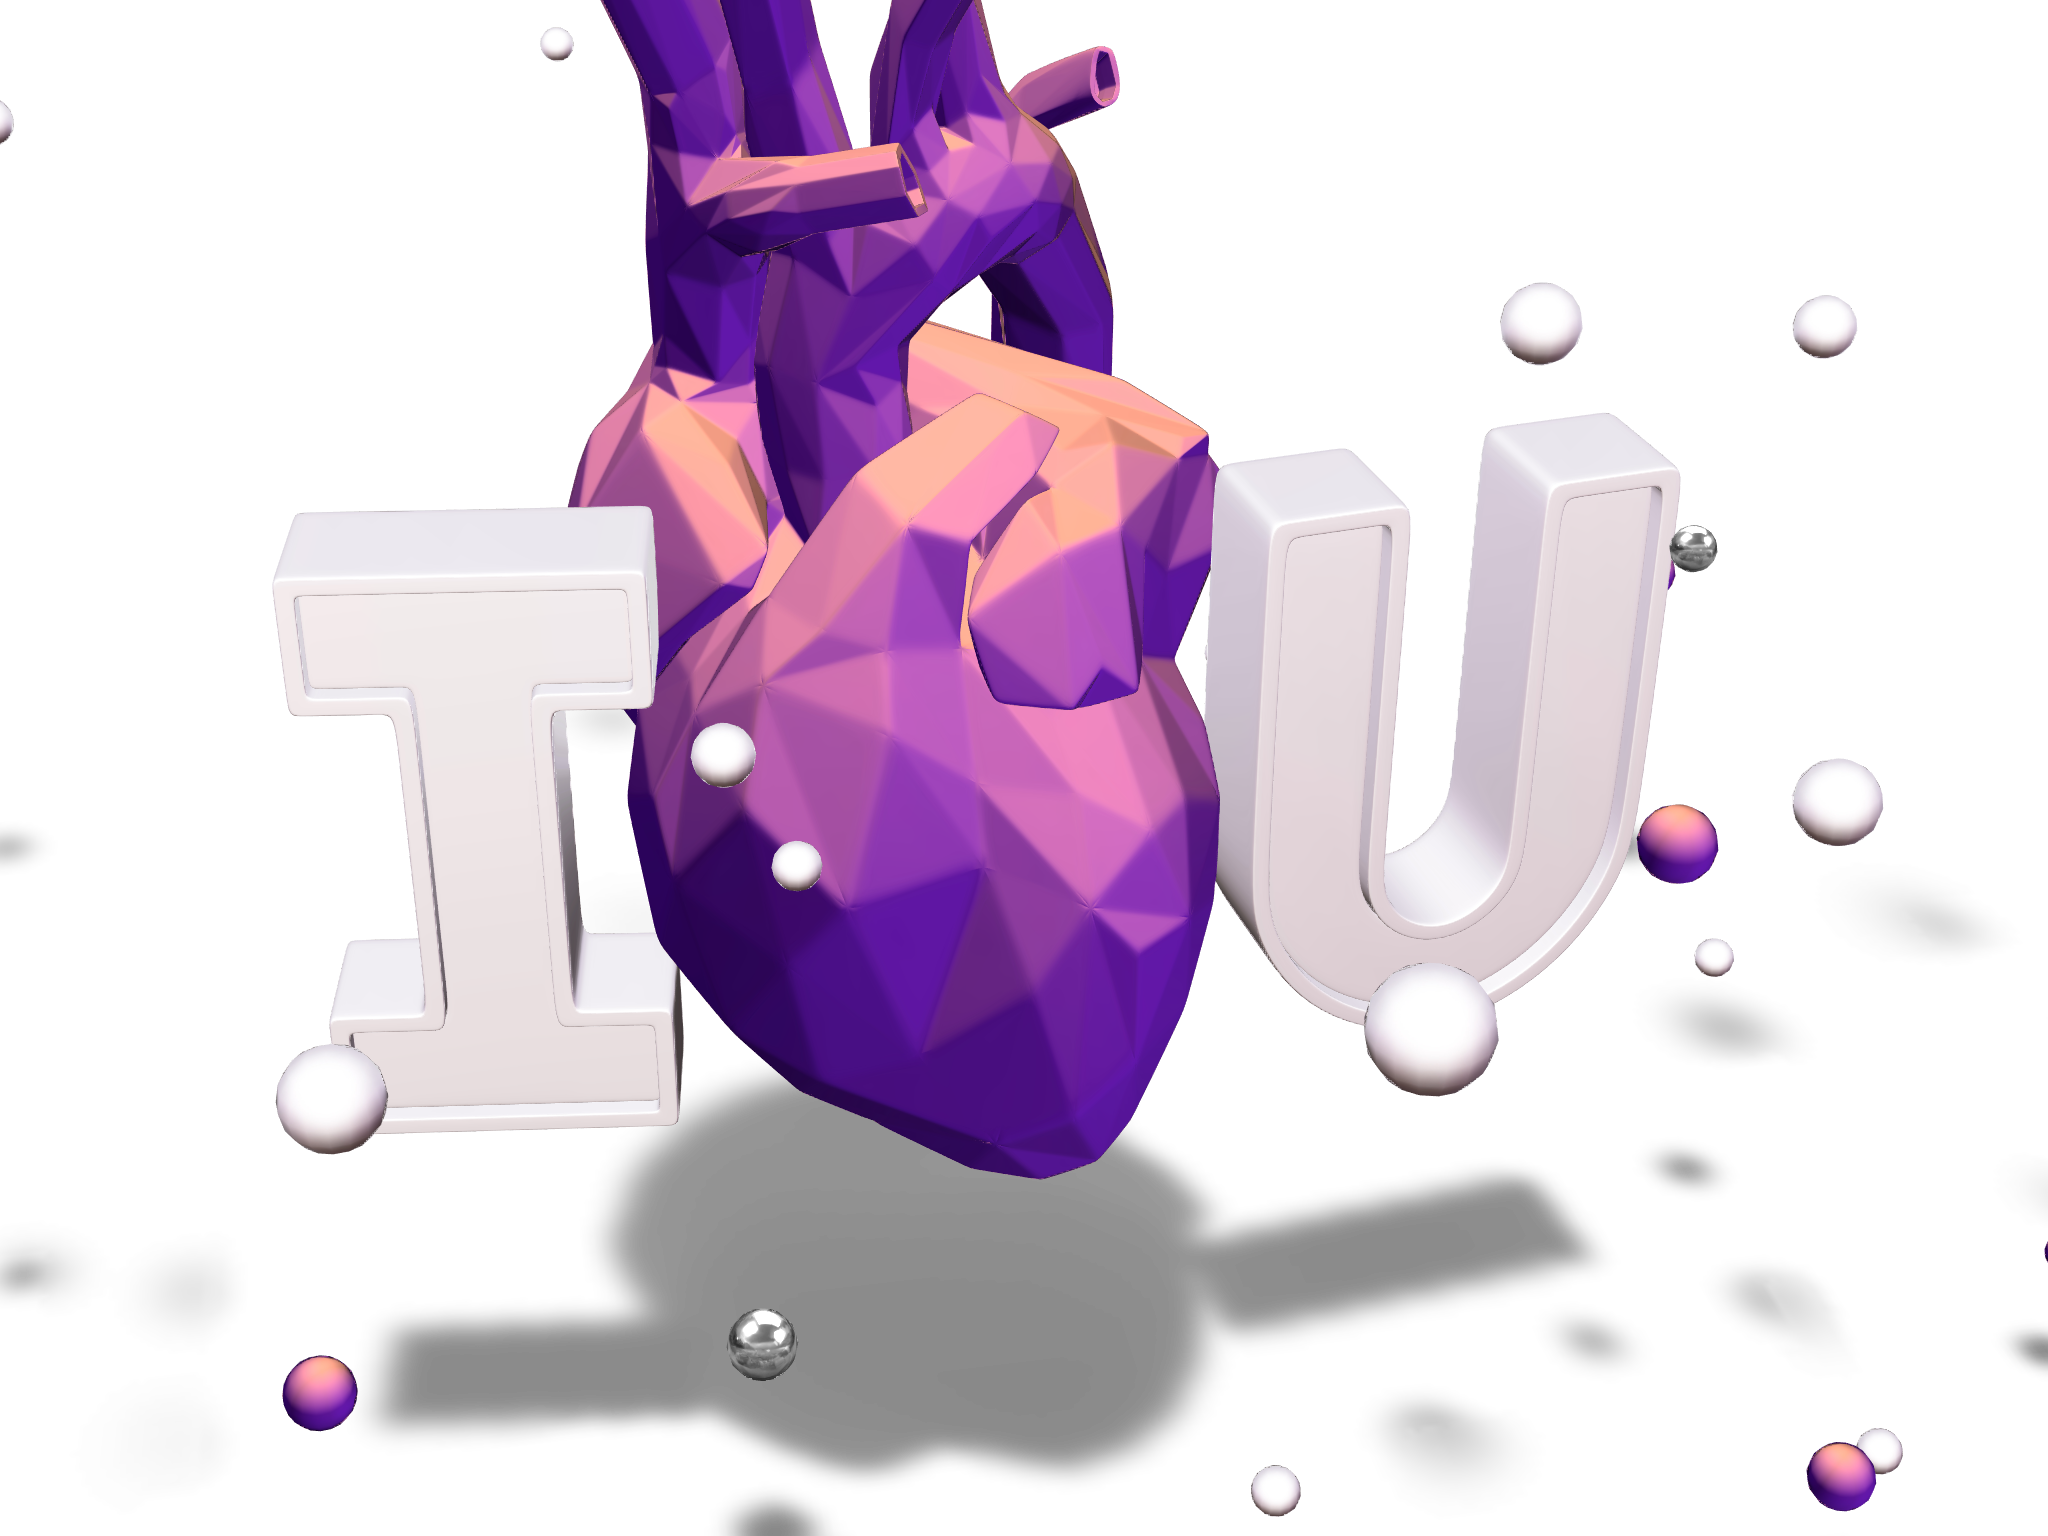 I Love U | Valentine's Day Card - 3D design by Parth Savani May 4, 2018